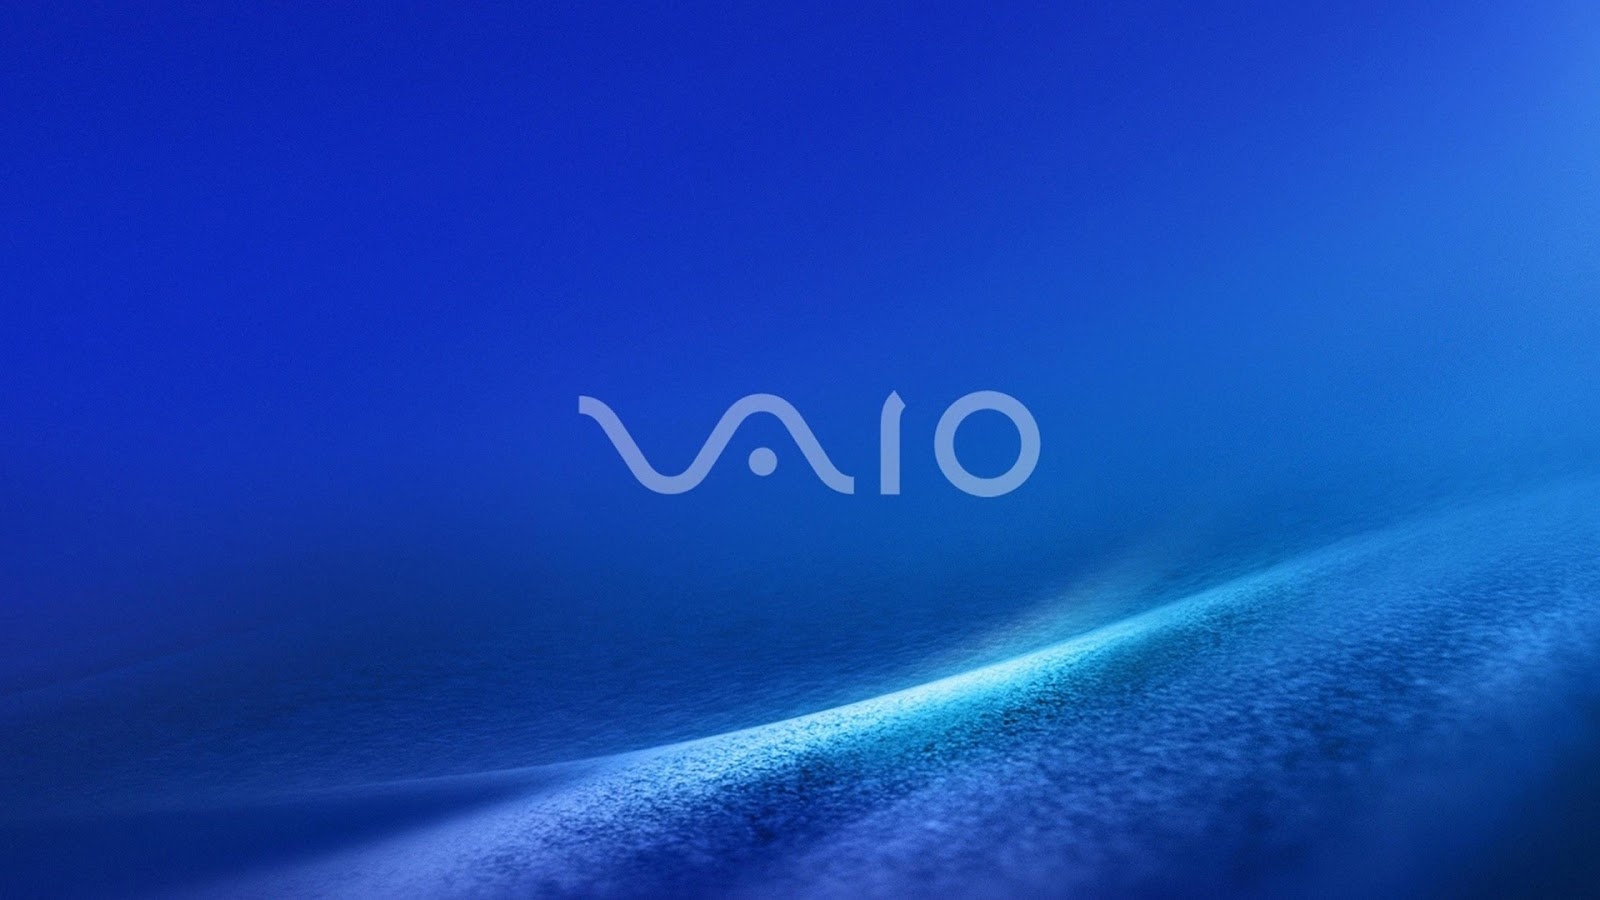 Sony vaio hd wallpapers hd wallpapers high definition for Sfondi vaio